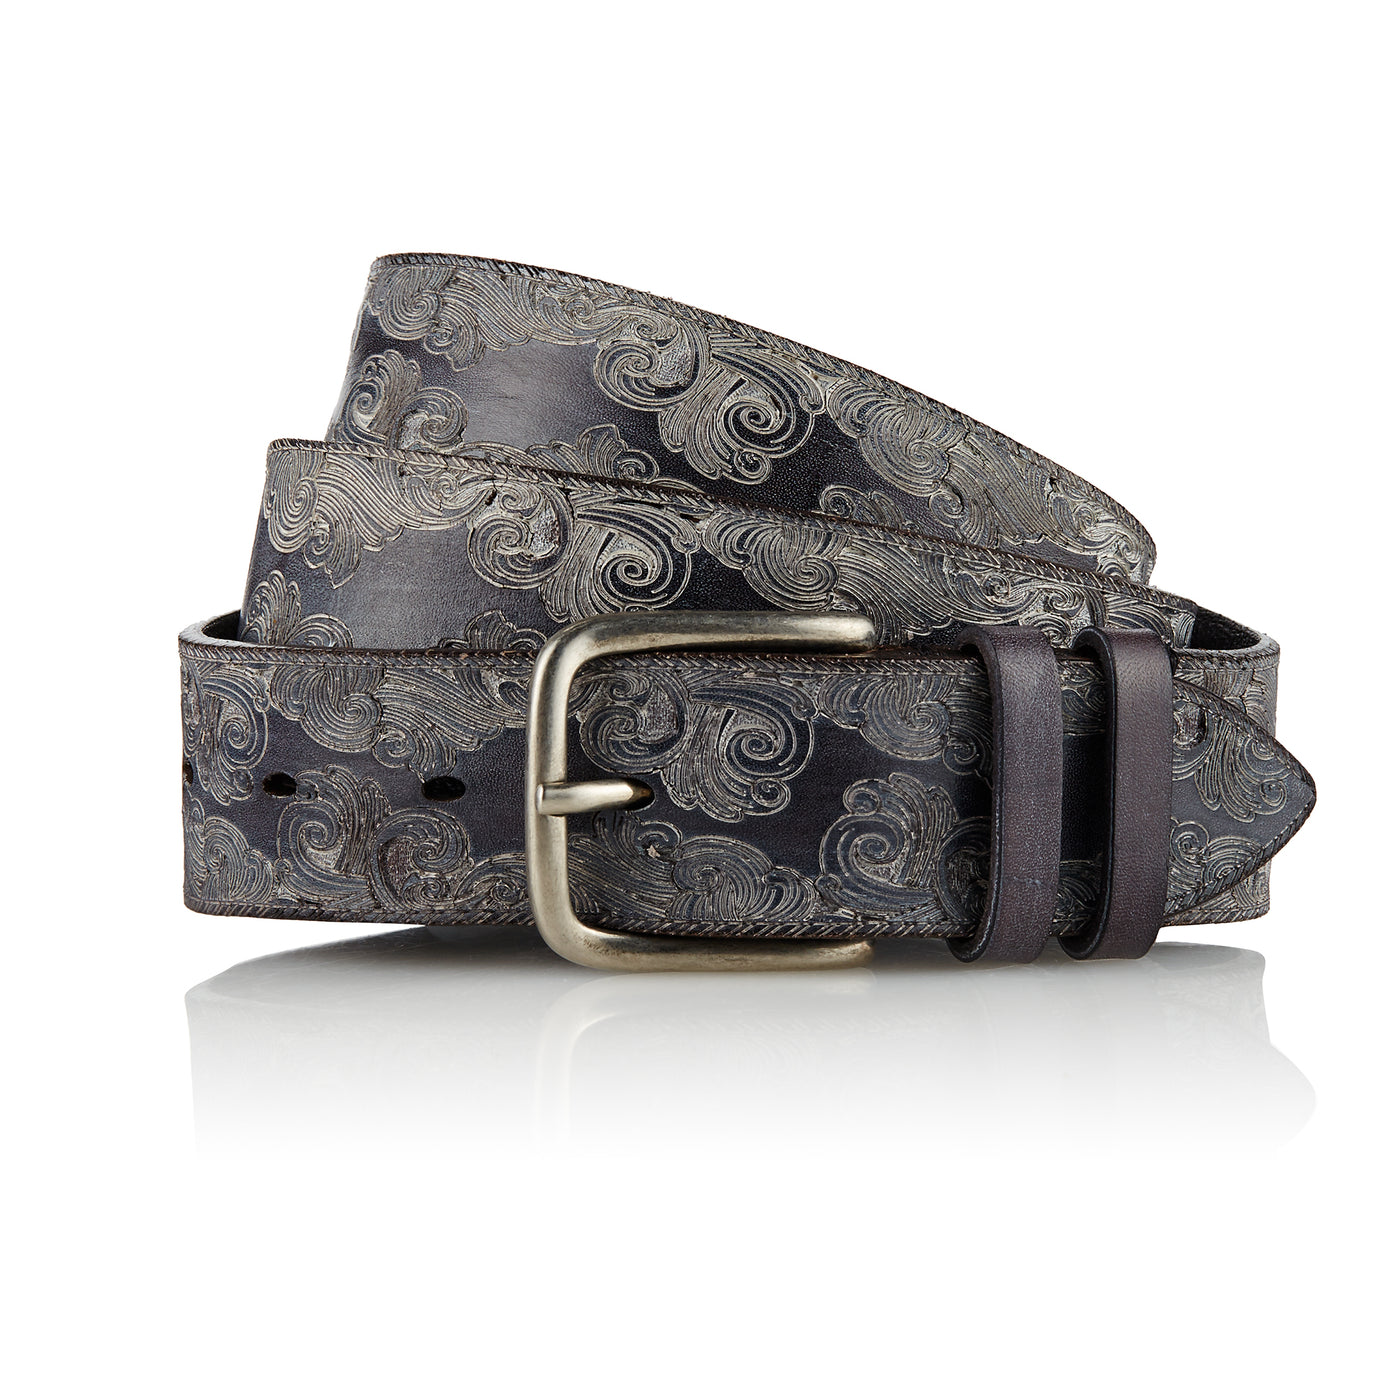 Dayak - Handcrafted Italian Belt / Navy Blue